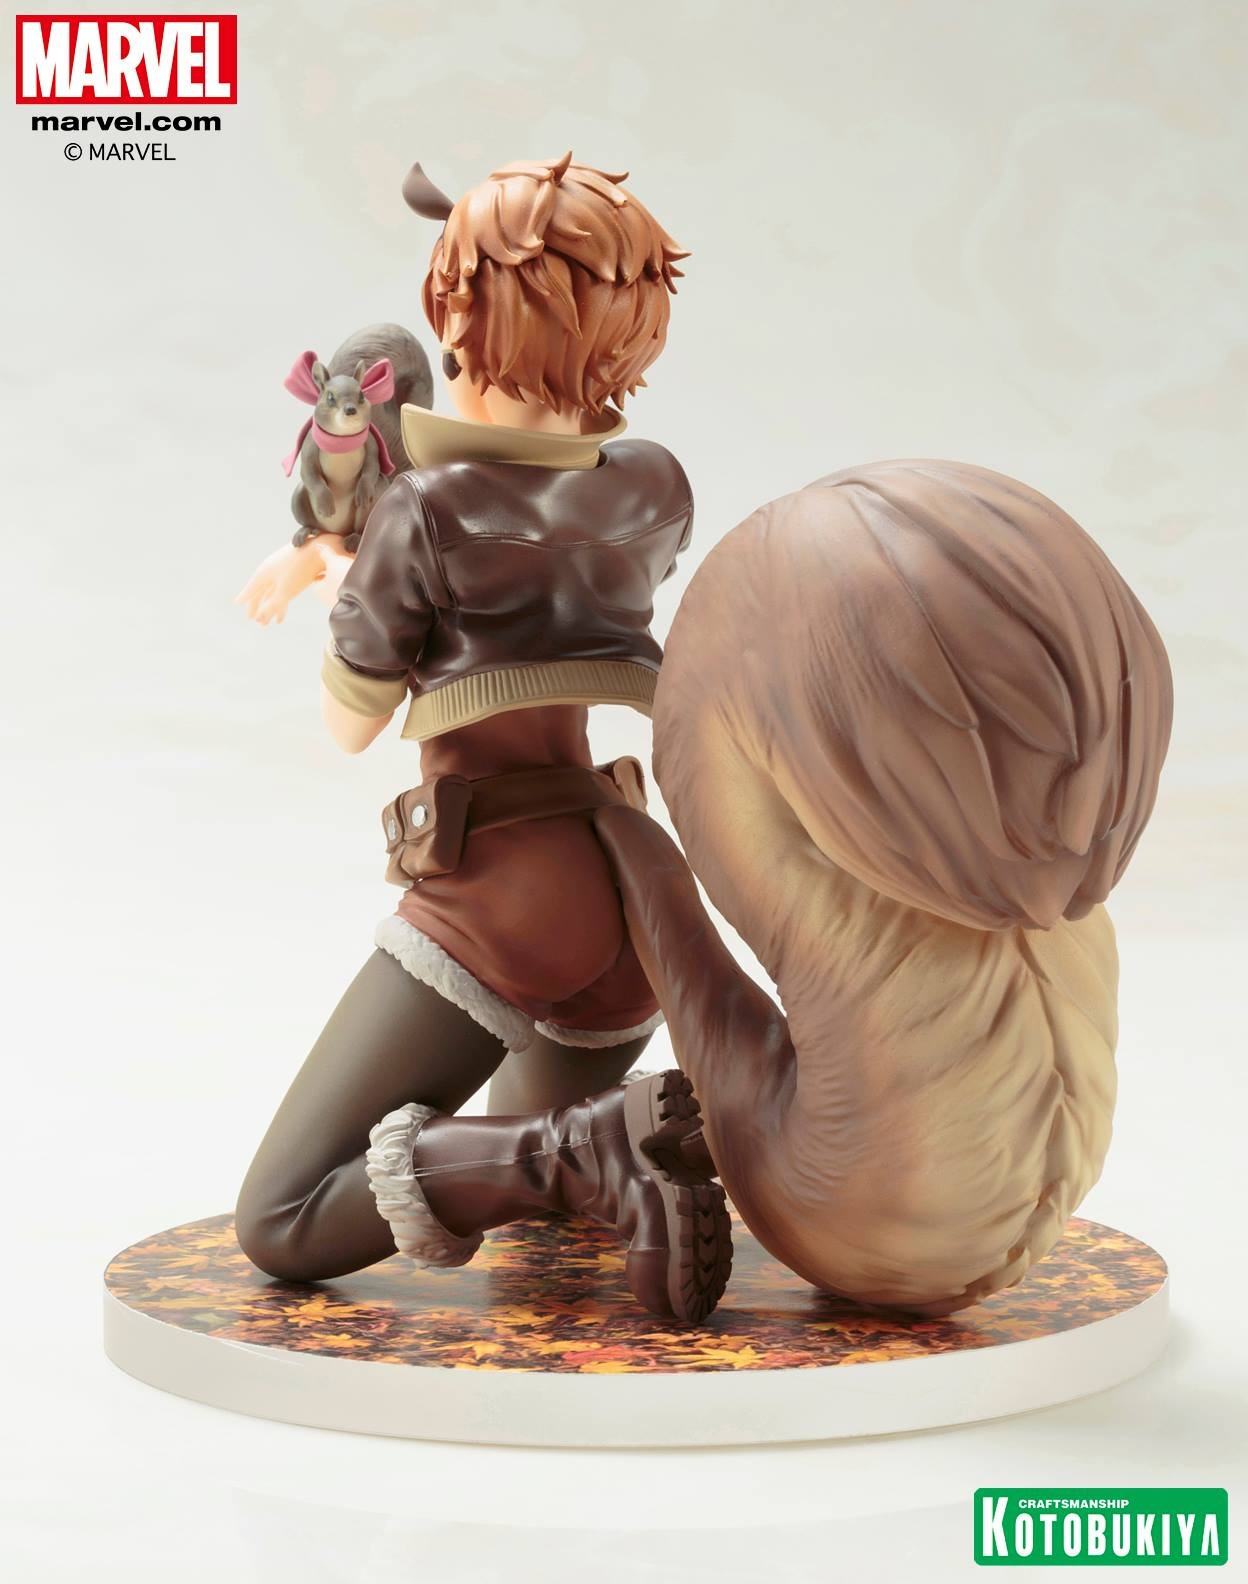 squirrel-girl-bishoujo-statue-marvel-kotobukiya-5